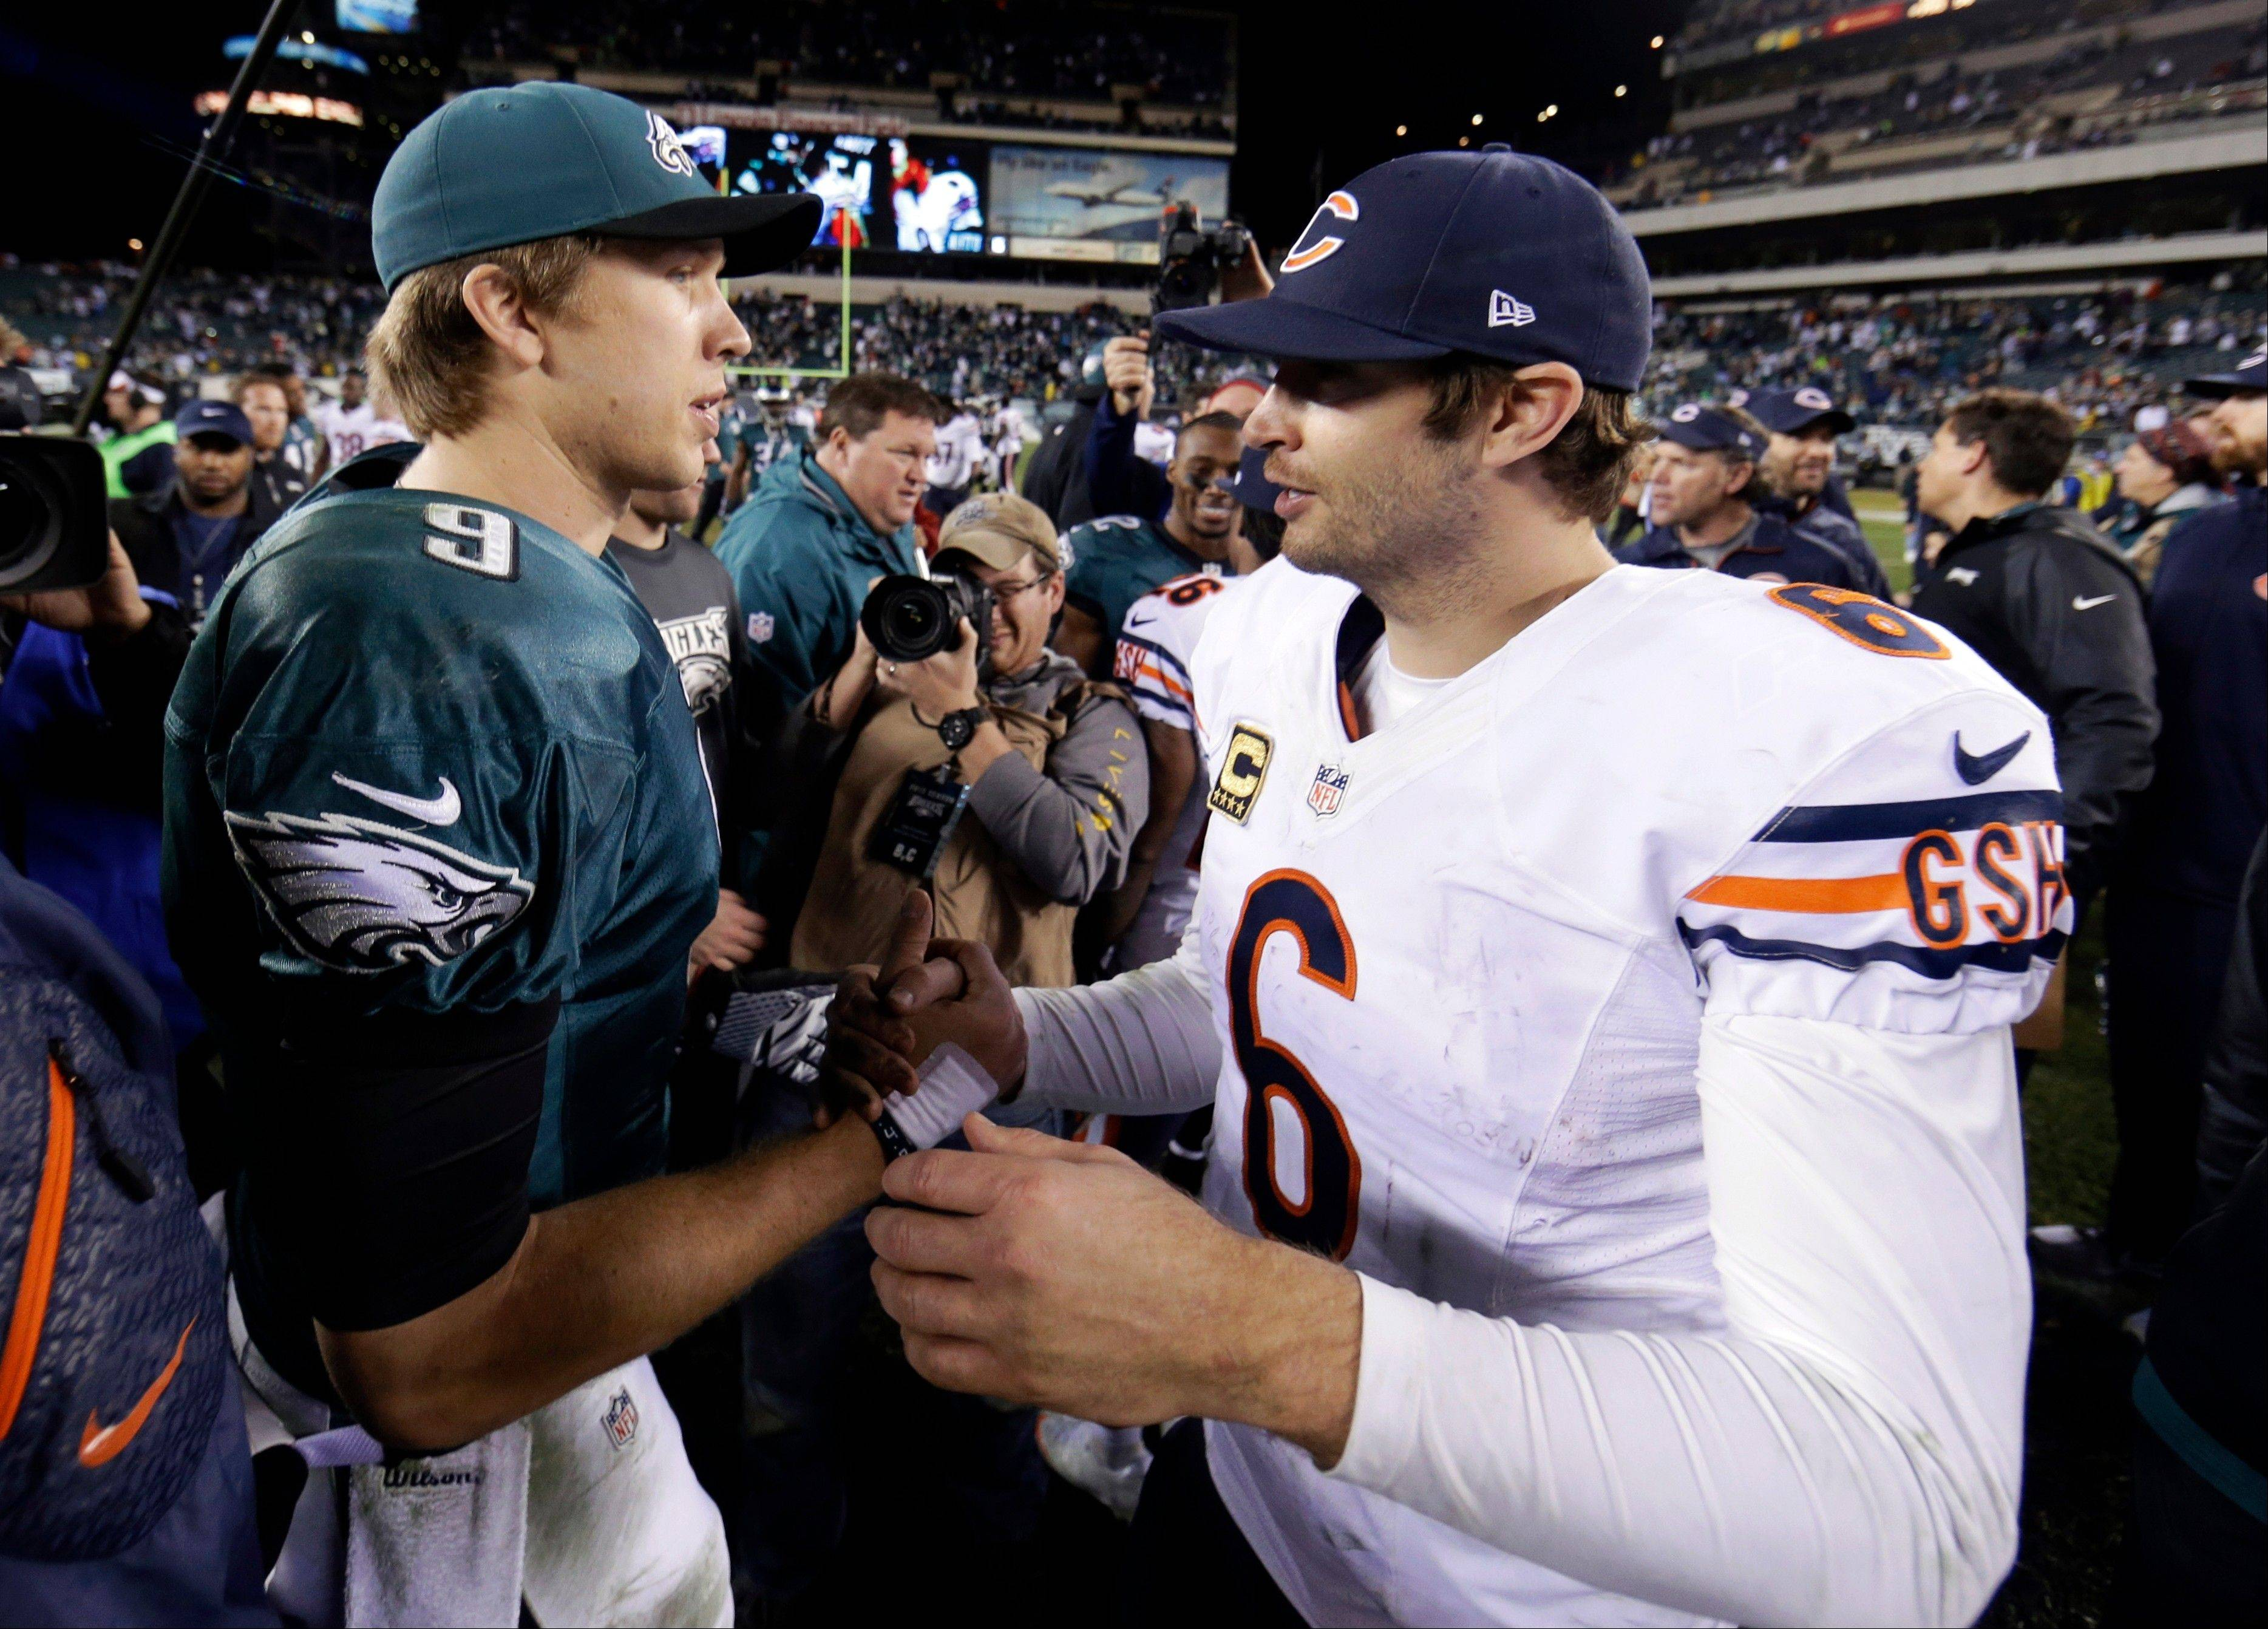 Following Sunday's 54-11 Philadelphia victory, Bears quarterback Jay Cutler, right, meets with Nick Foles, his Eagles counterpart. Foles has turned out to be quite a find for the Eagles as a third-round draft pick in 2012.